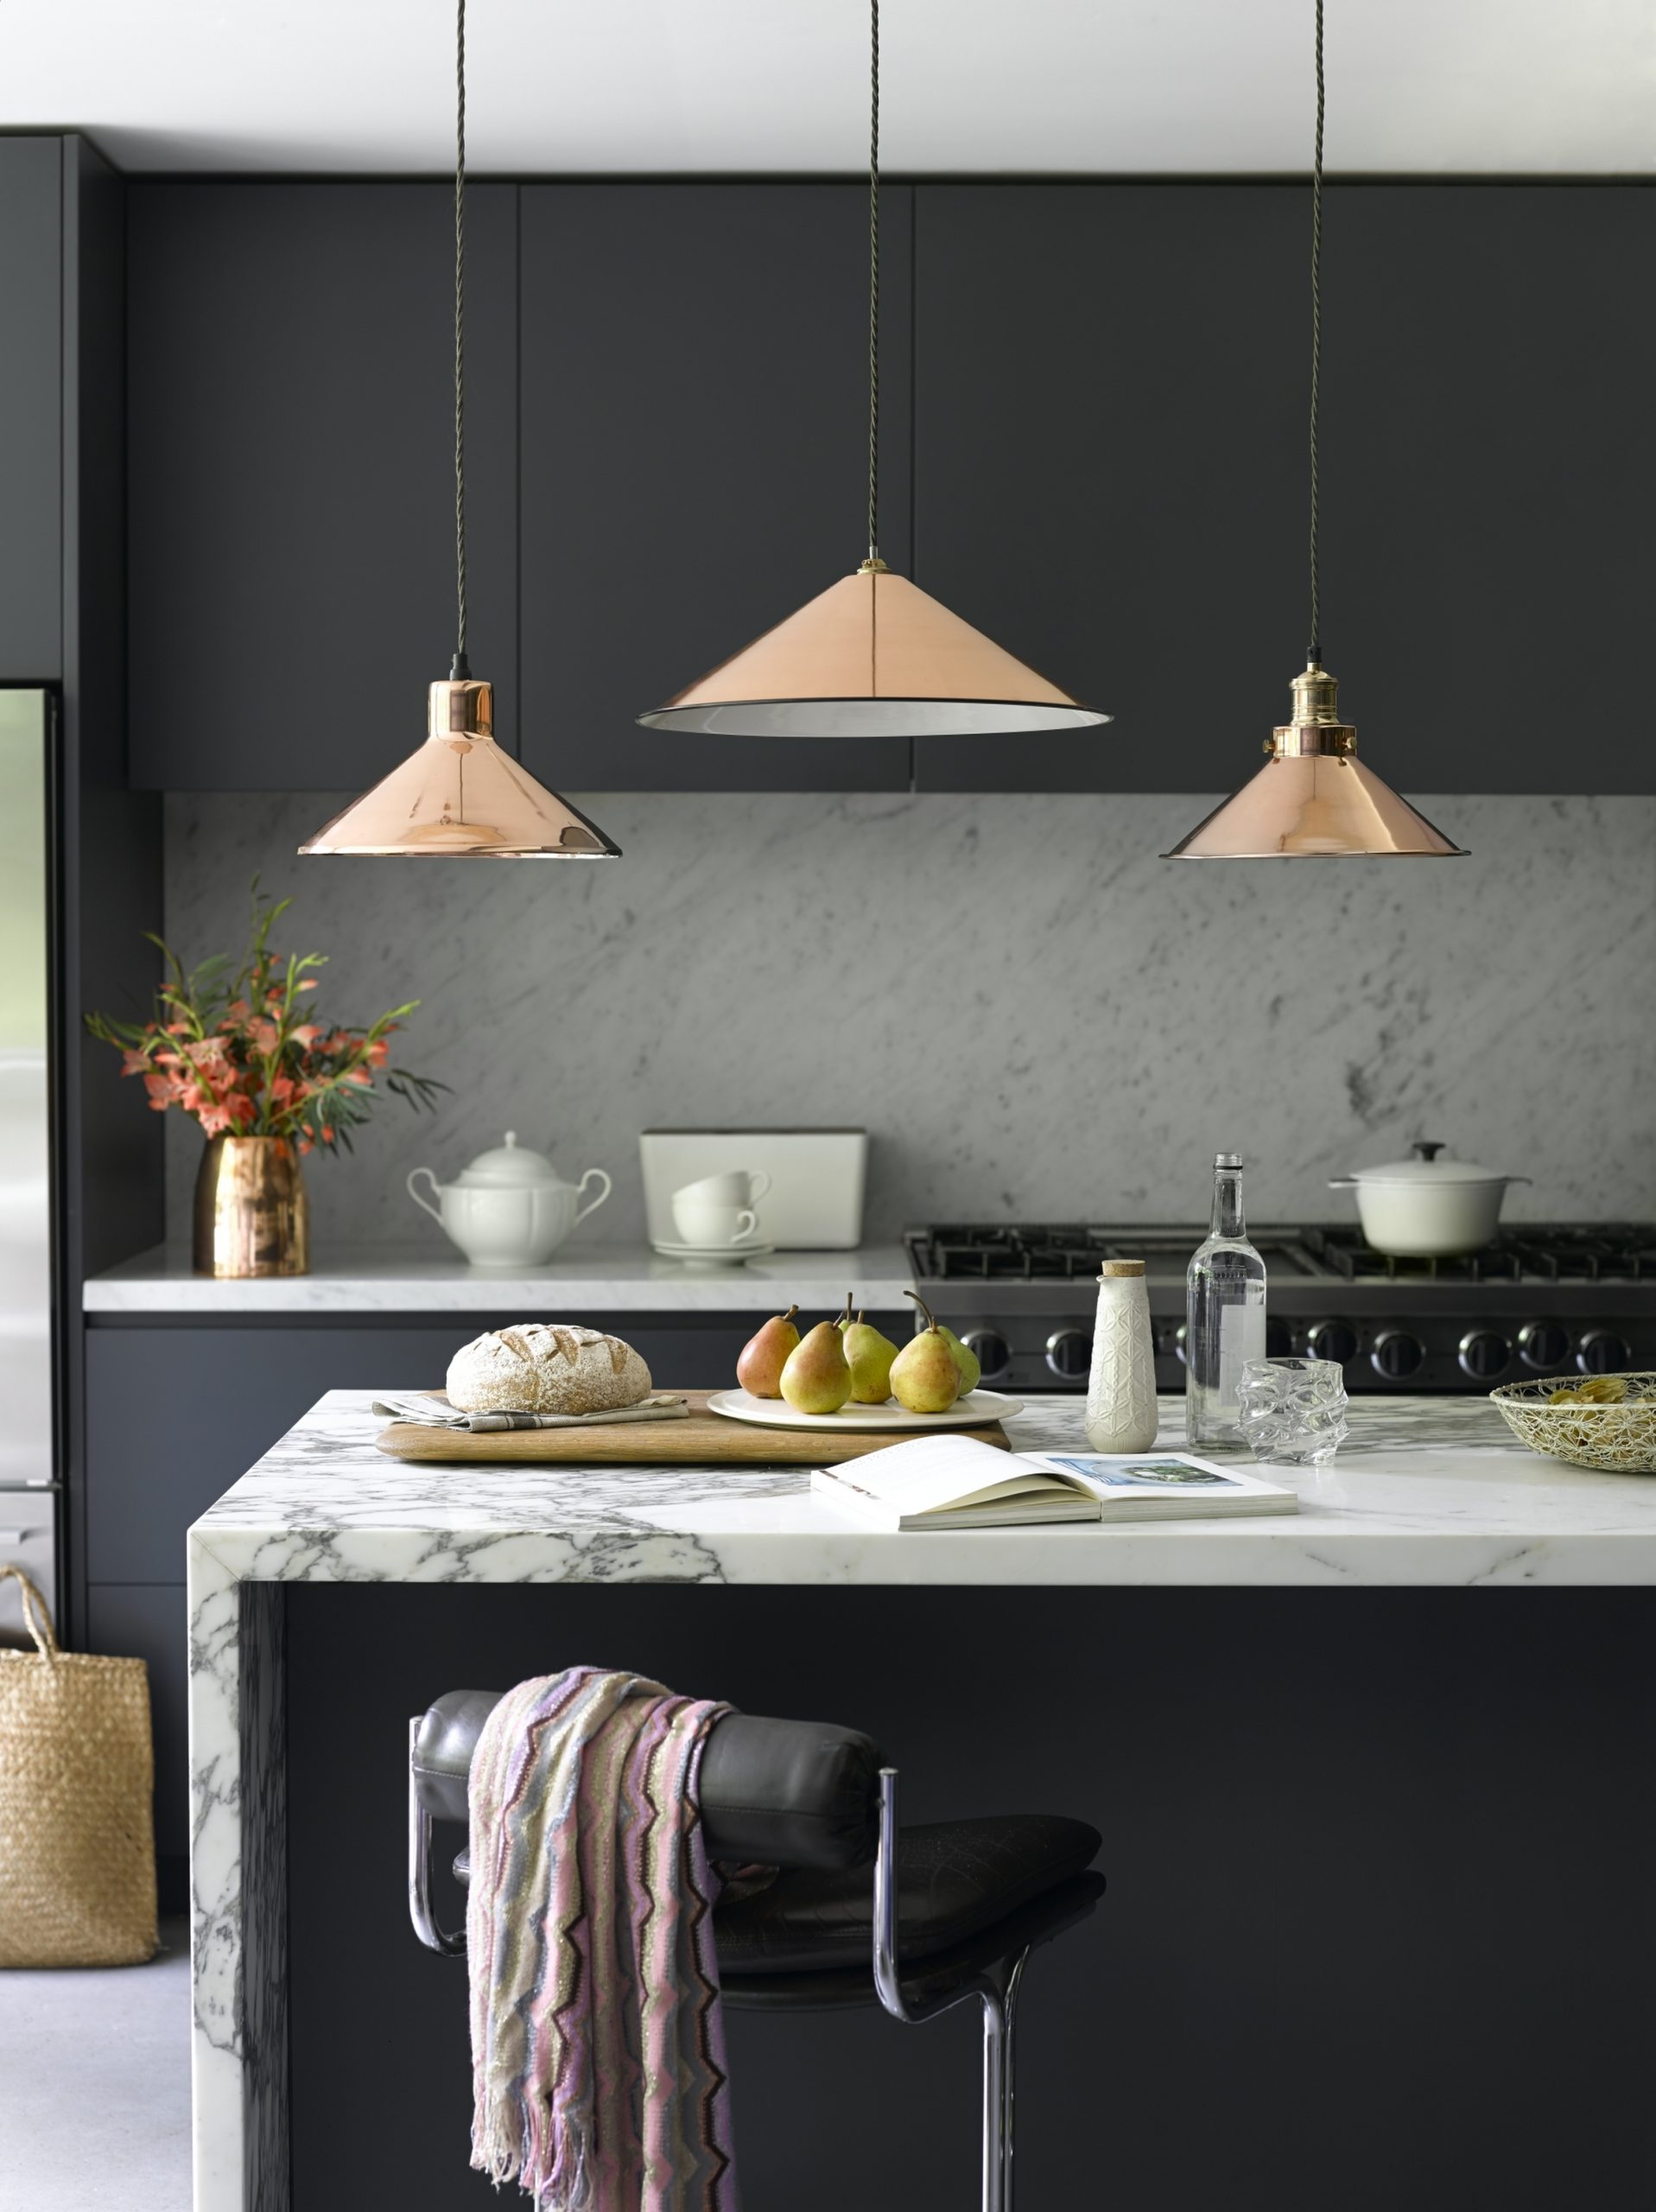 Lighting ideas for small kitchens Brighten up a dark room   Homes ...